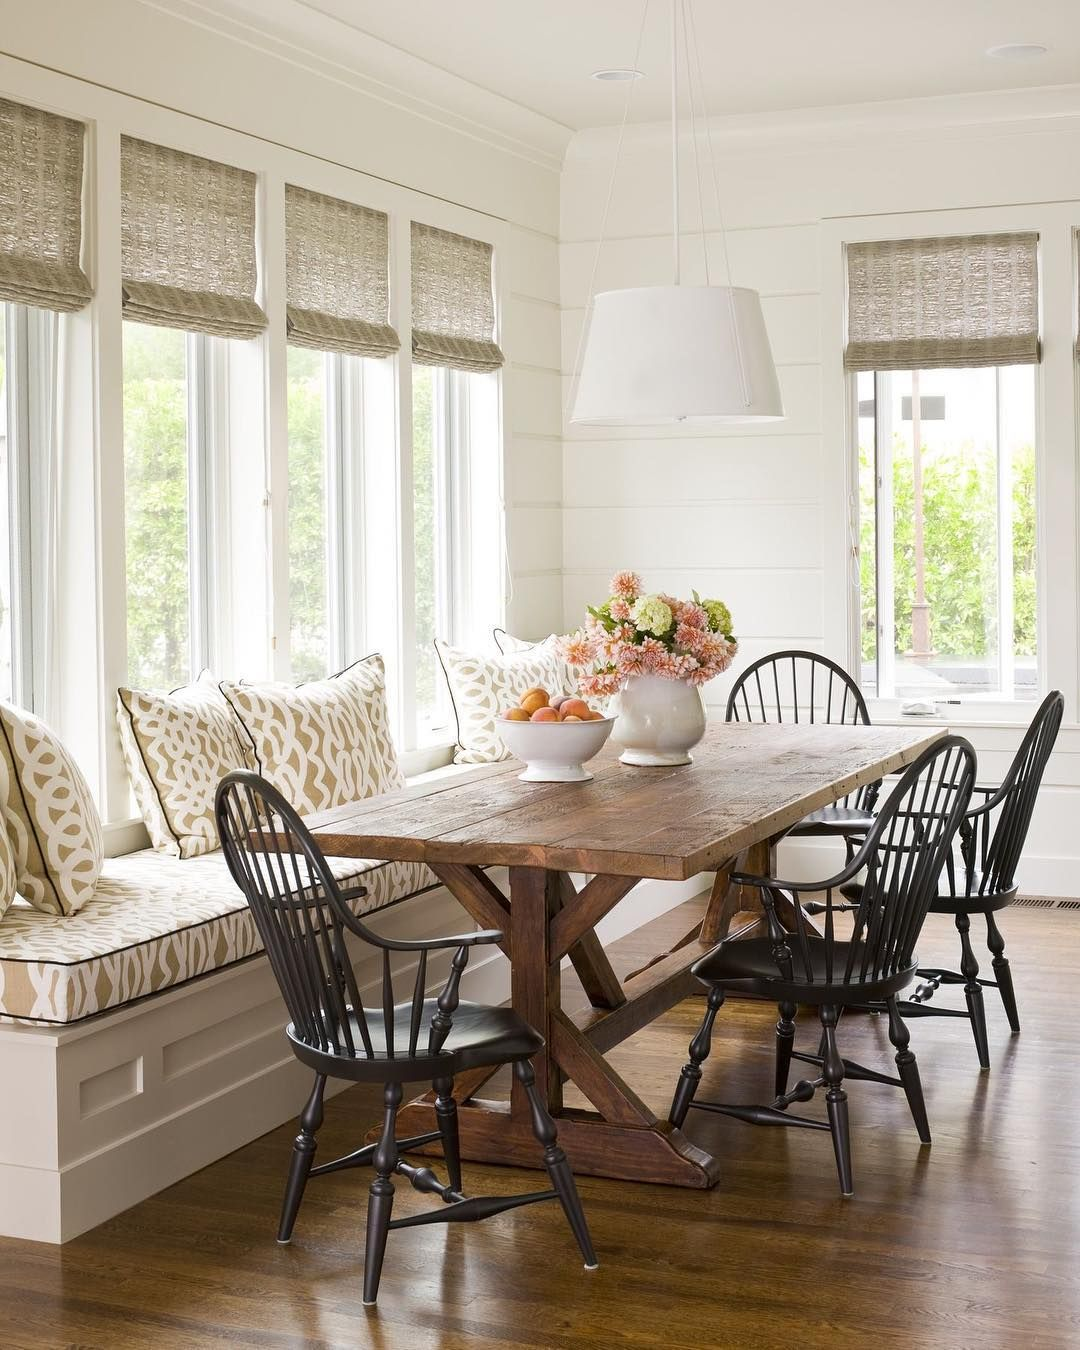 Window Seating For Dining Room - Dining room built in bench large windows large farmhouse